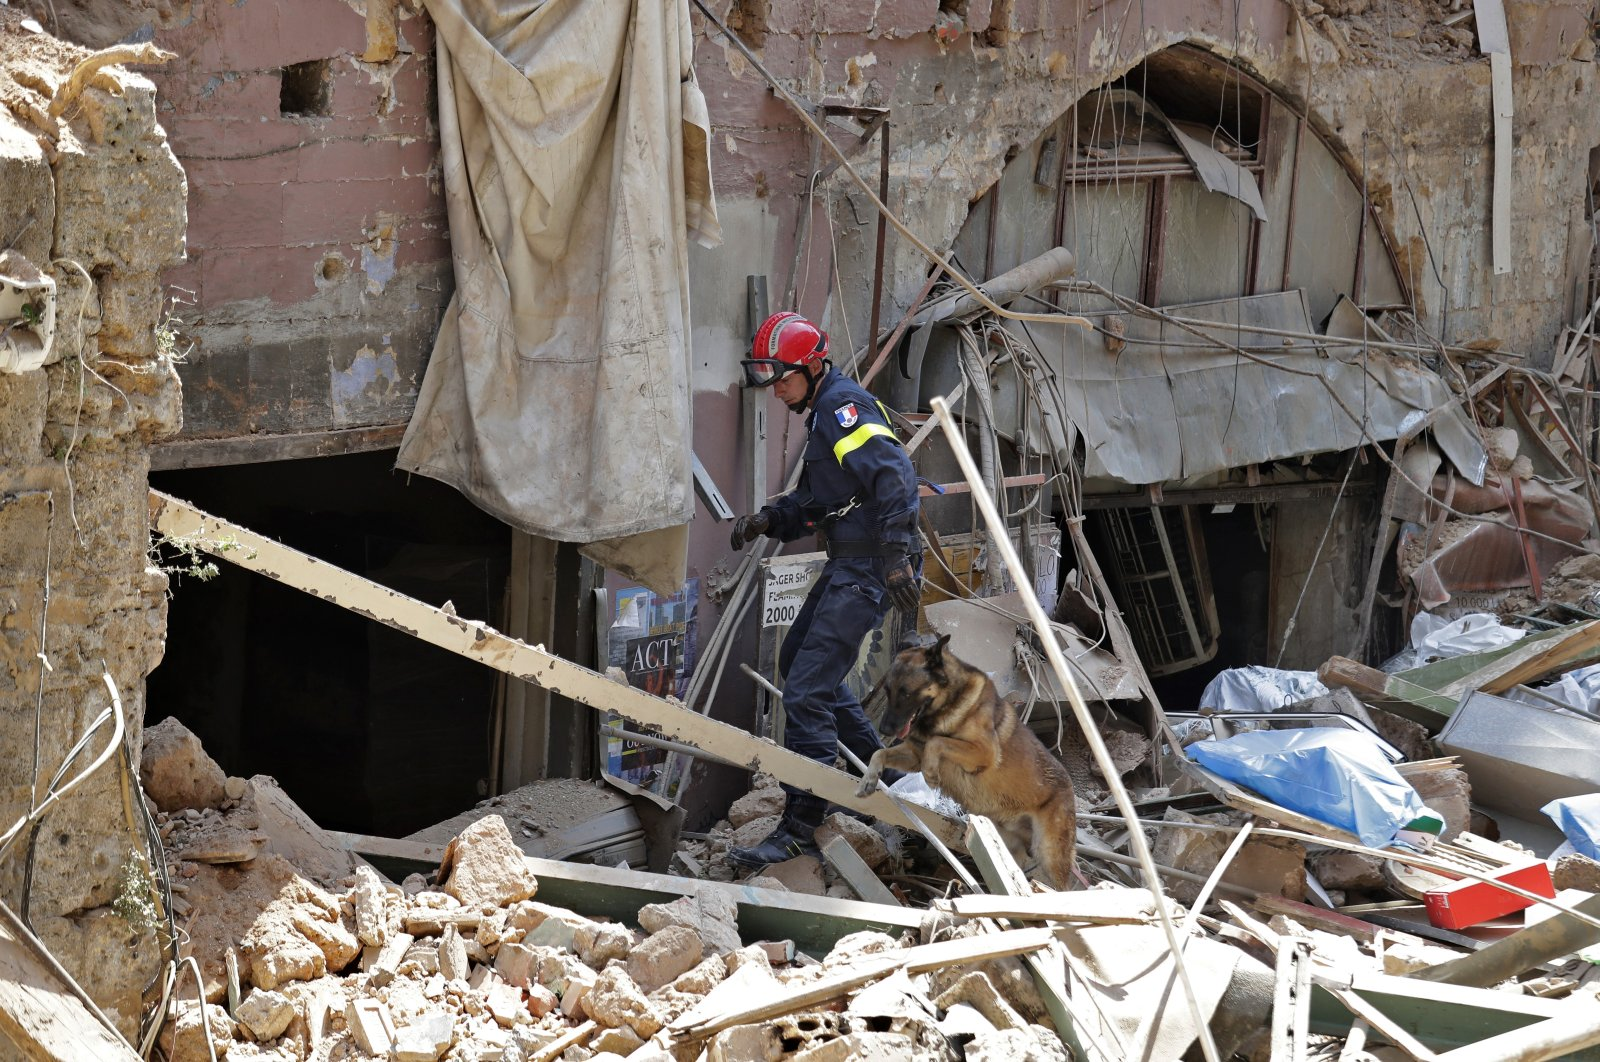 A French fireman and a rescue dog search in the rubble of a building after the Tuesday explosion at the seaport of Beirut, in Beirut, Lebanon, Thursday, Aug. 6, 2020. (AP Photo)